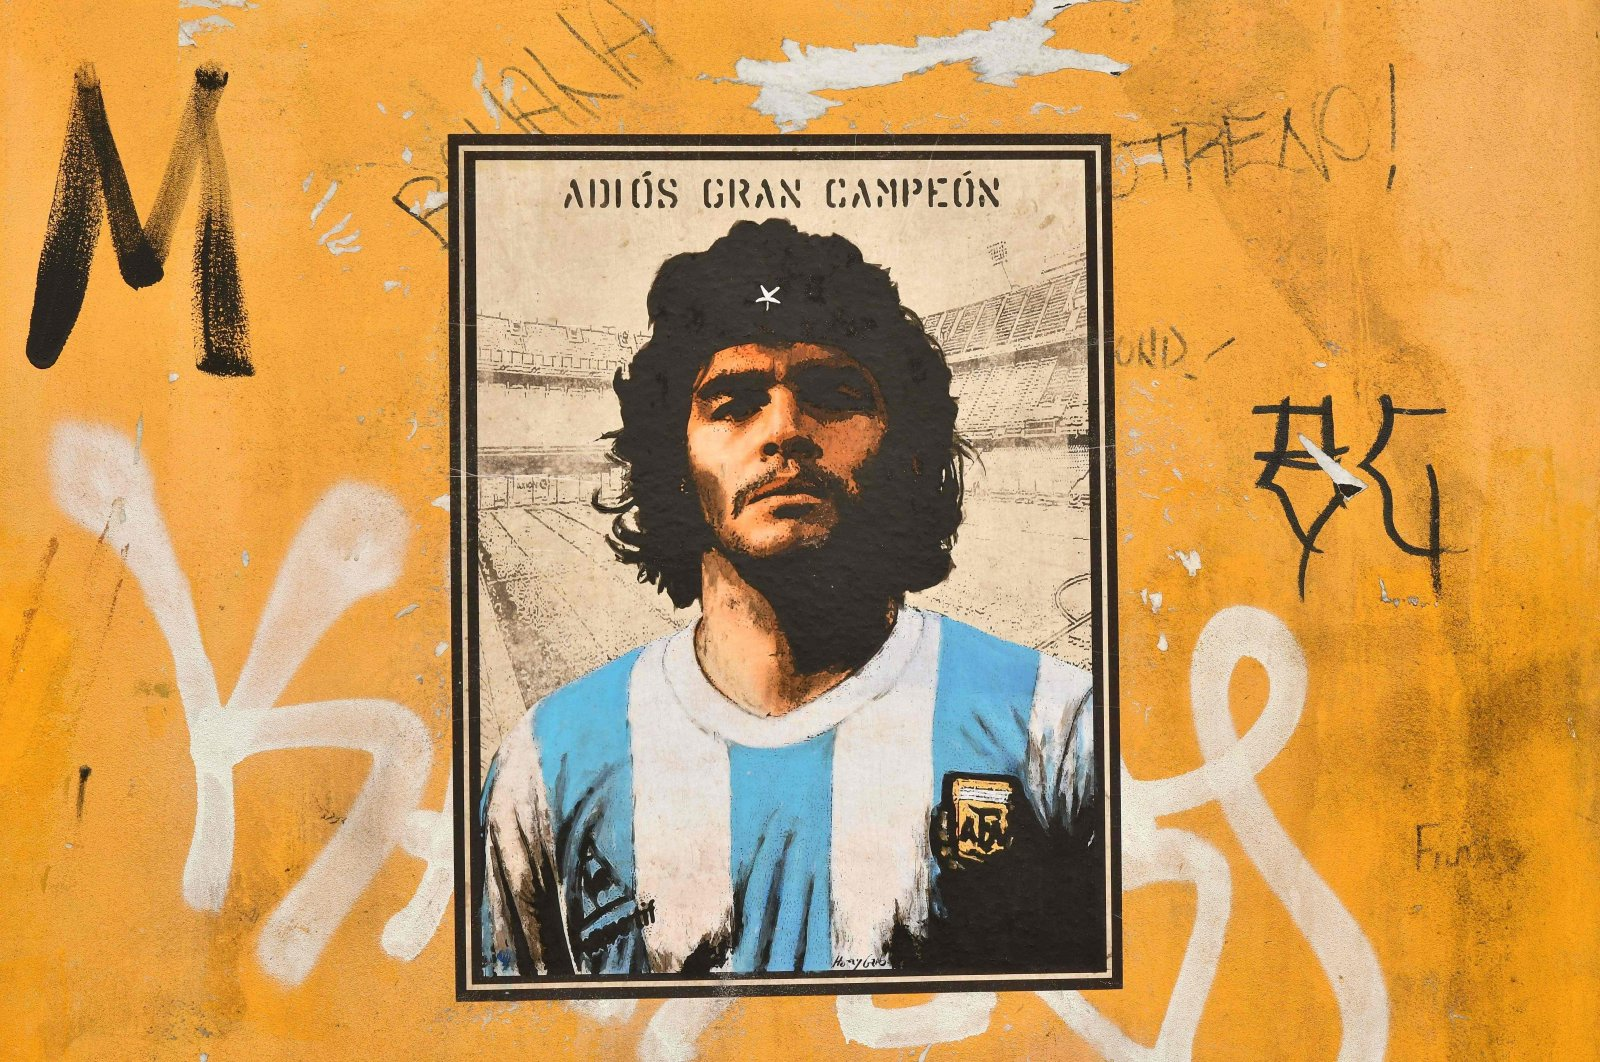 A mural dedicated to Diego Armando Maradona by street artist Harry Greb is seen in the Trastevere district of Rome, Italy, Nov. 27, 2020. (AFP Photo)